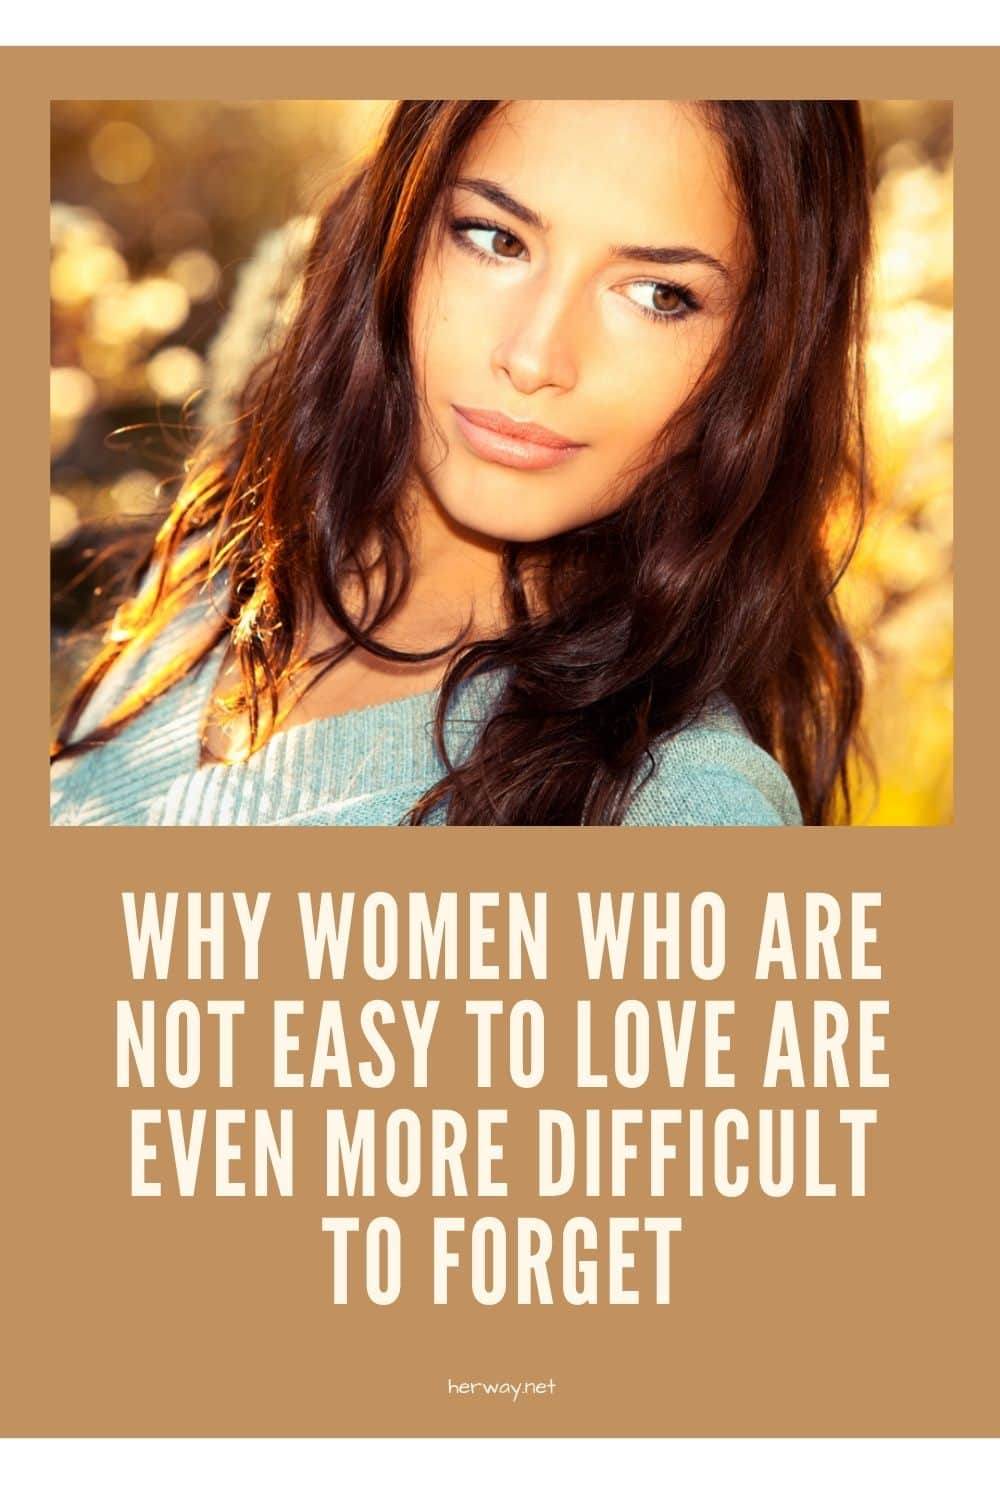 Why Women Who Are Not Easy To Love Are Even More Difficult To Forget